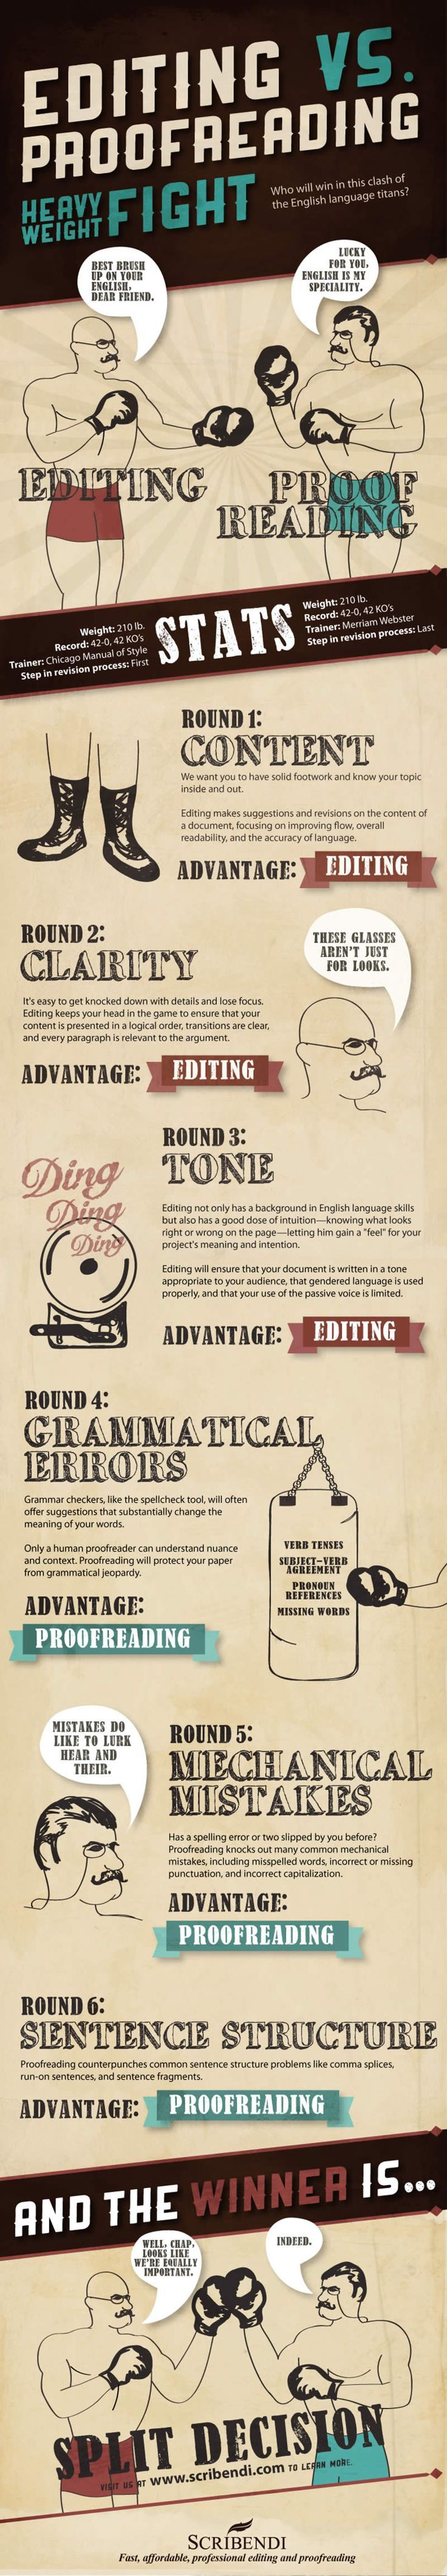 easy essay writing editing tips